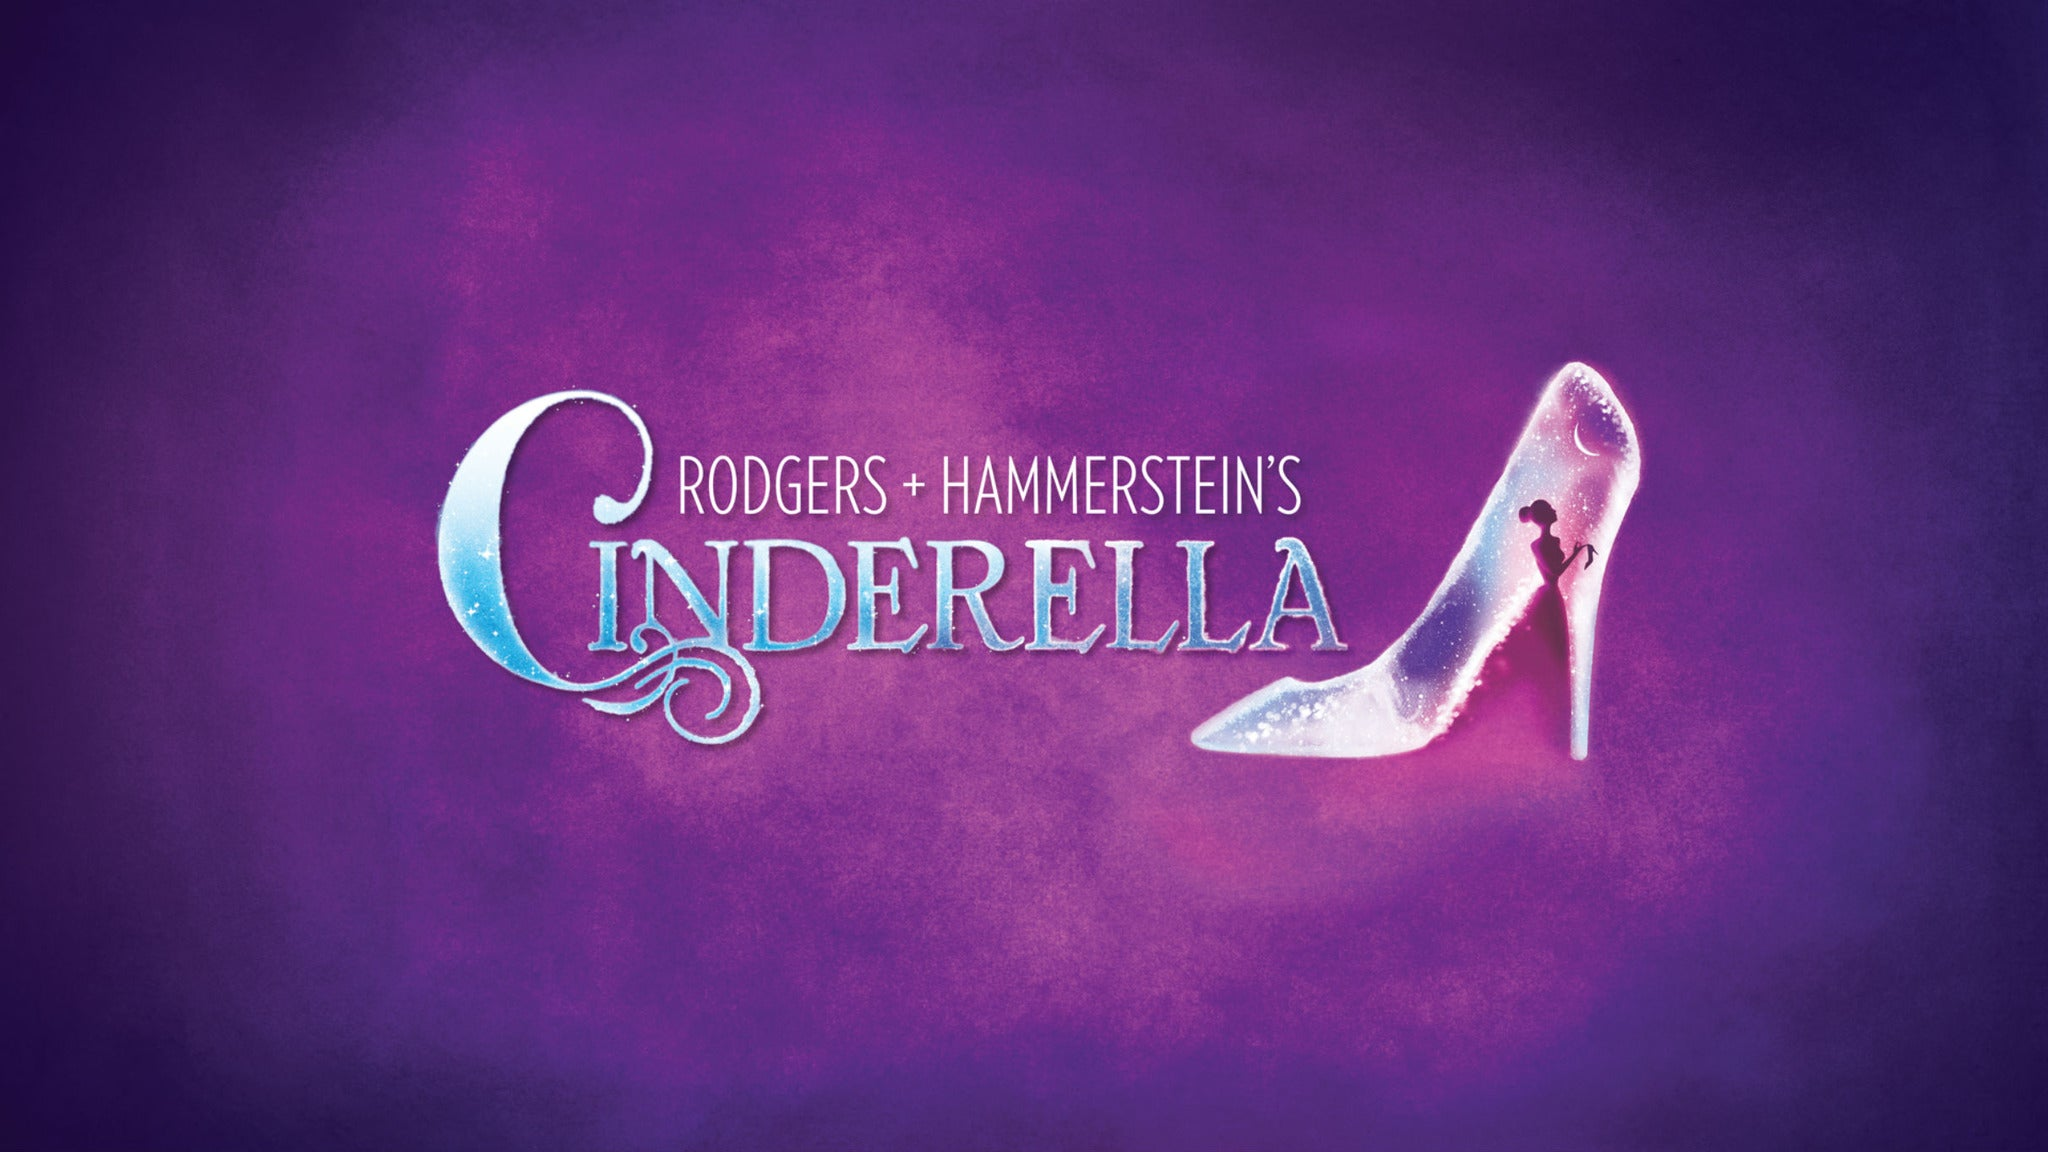 Cinderella-Theater at Cynthia Woods Mitchell Pavilion